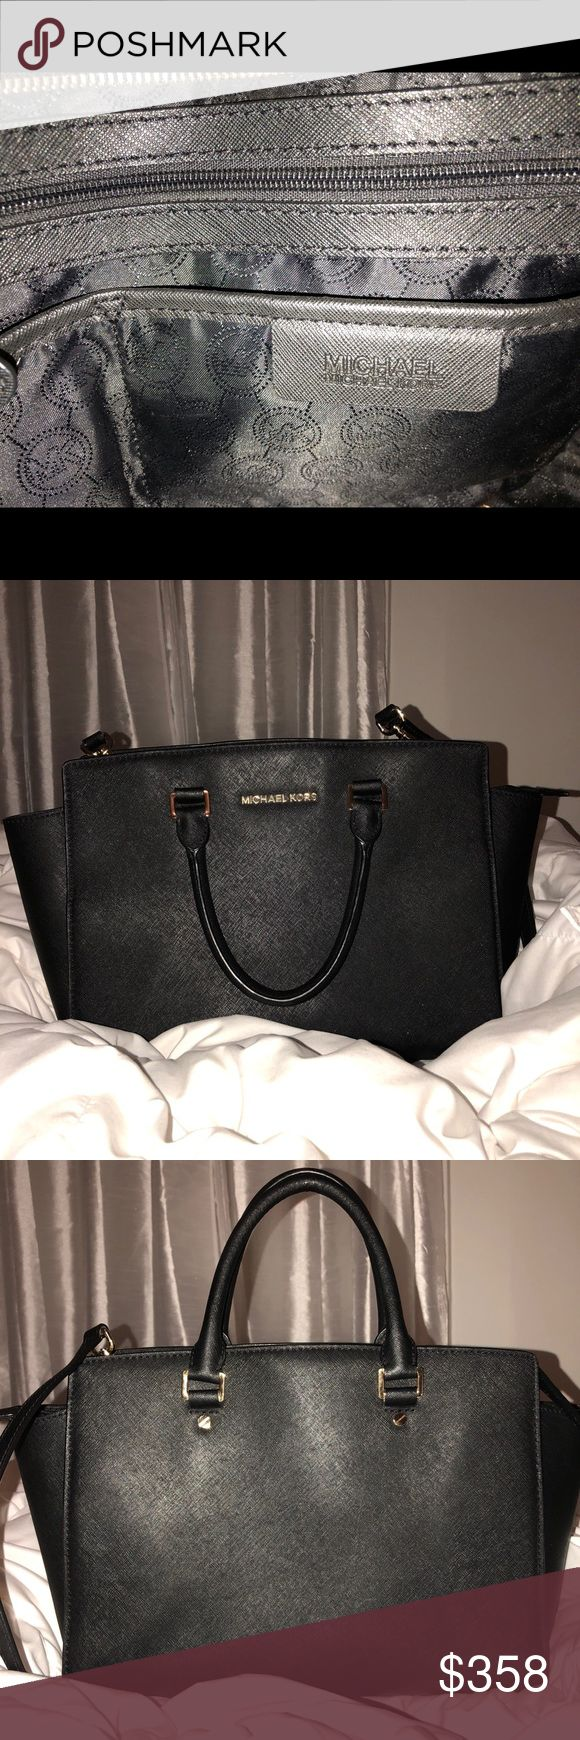 Michael Kors Selma large Saffiano leather satchel It's a black MK purse practically new, very clean, it is the perfect size not too big not too small and the material is nice and lasts. It is a shoulder bag and a crossbody bag KORS Michael Kors Bags Shoulder Bags